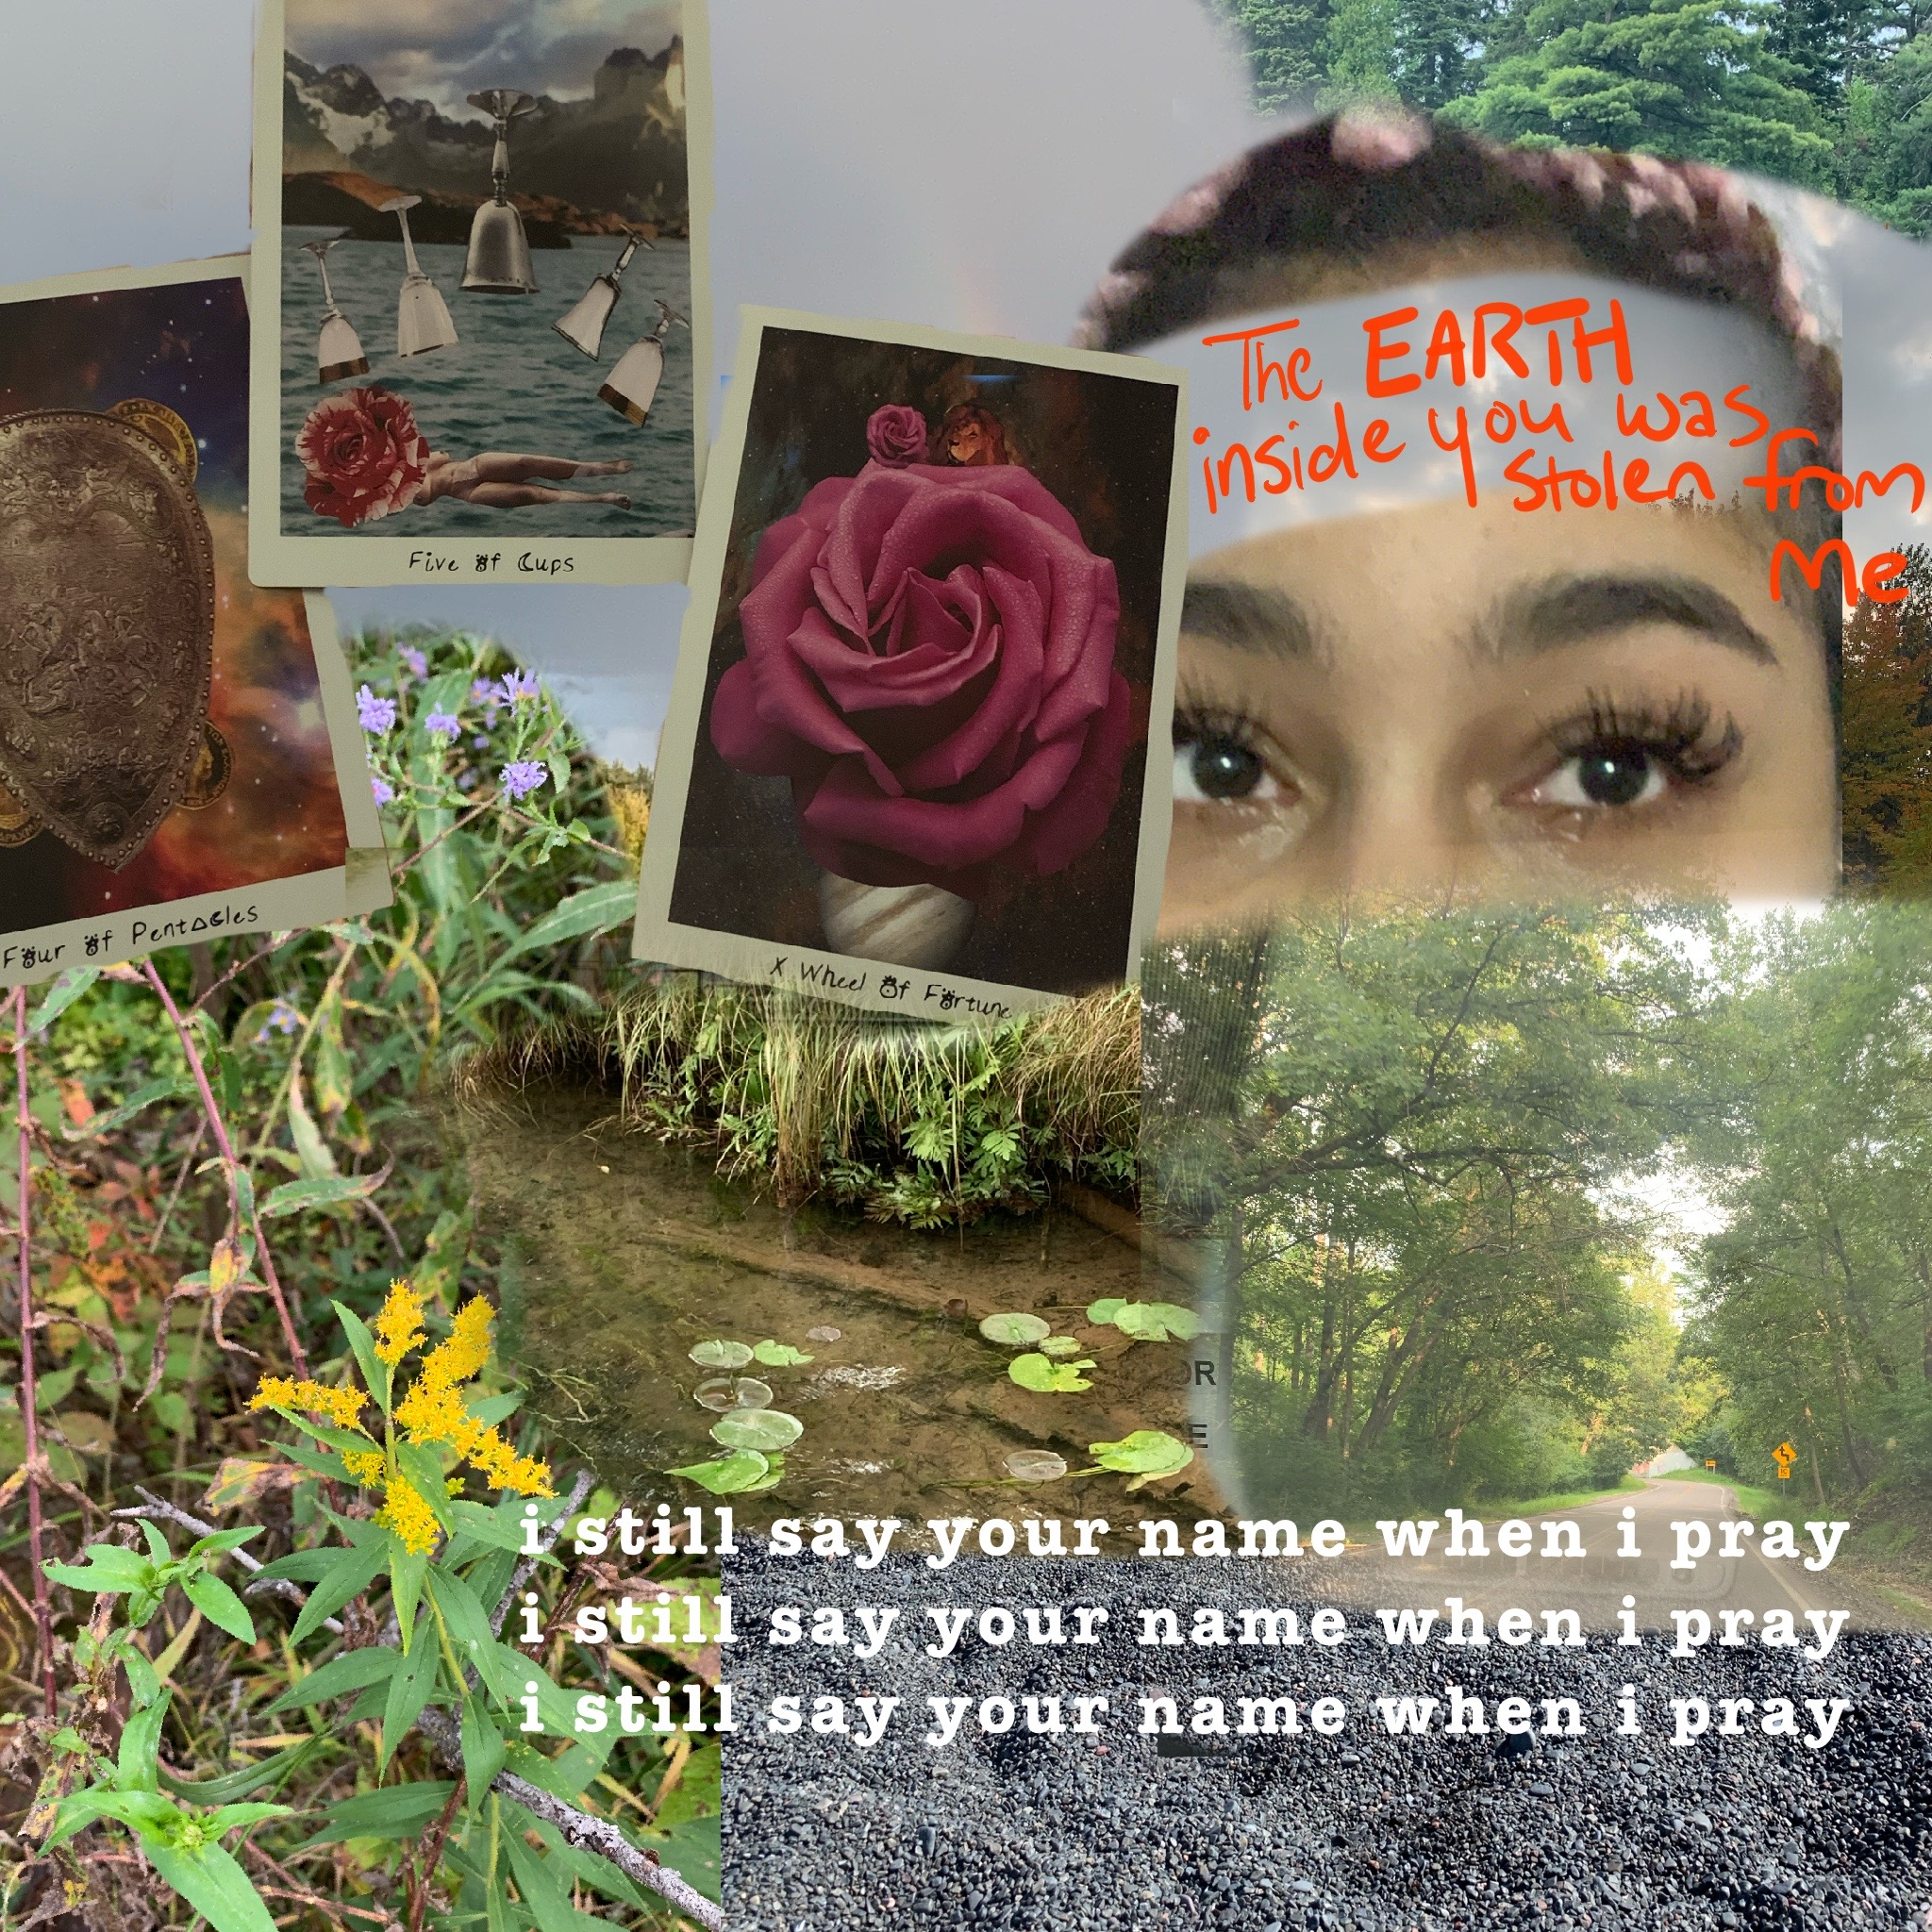 "A collage featuring three tarot cards in the left corner: the Four of Pentacles, Five of Cups and the Wheel of Fortune. In the right corner there is light-skinned black femme with teary eyes and the words ""The EARTH inside you was stolen from me"" written across their forehead. The bottom of the collage is various types of foliage and a path surrounded by trees. In the bottom right the phrase ""i still say your name when i pray"" is repeated three times."